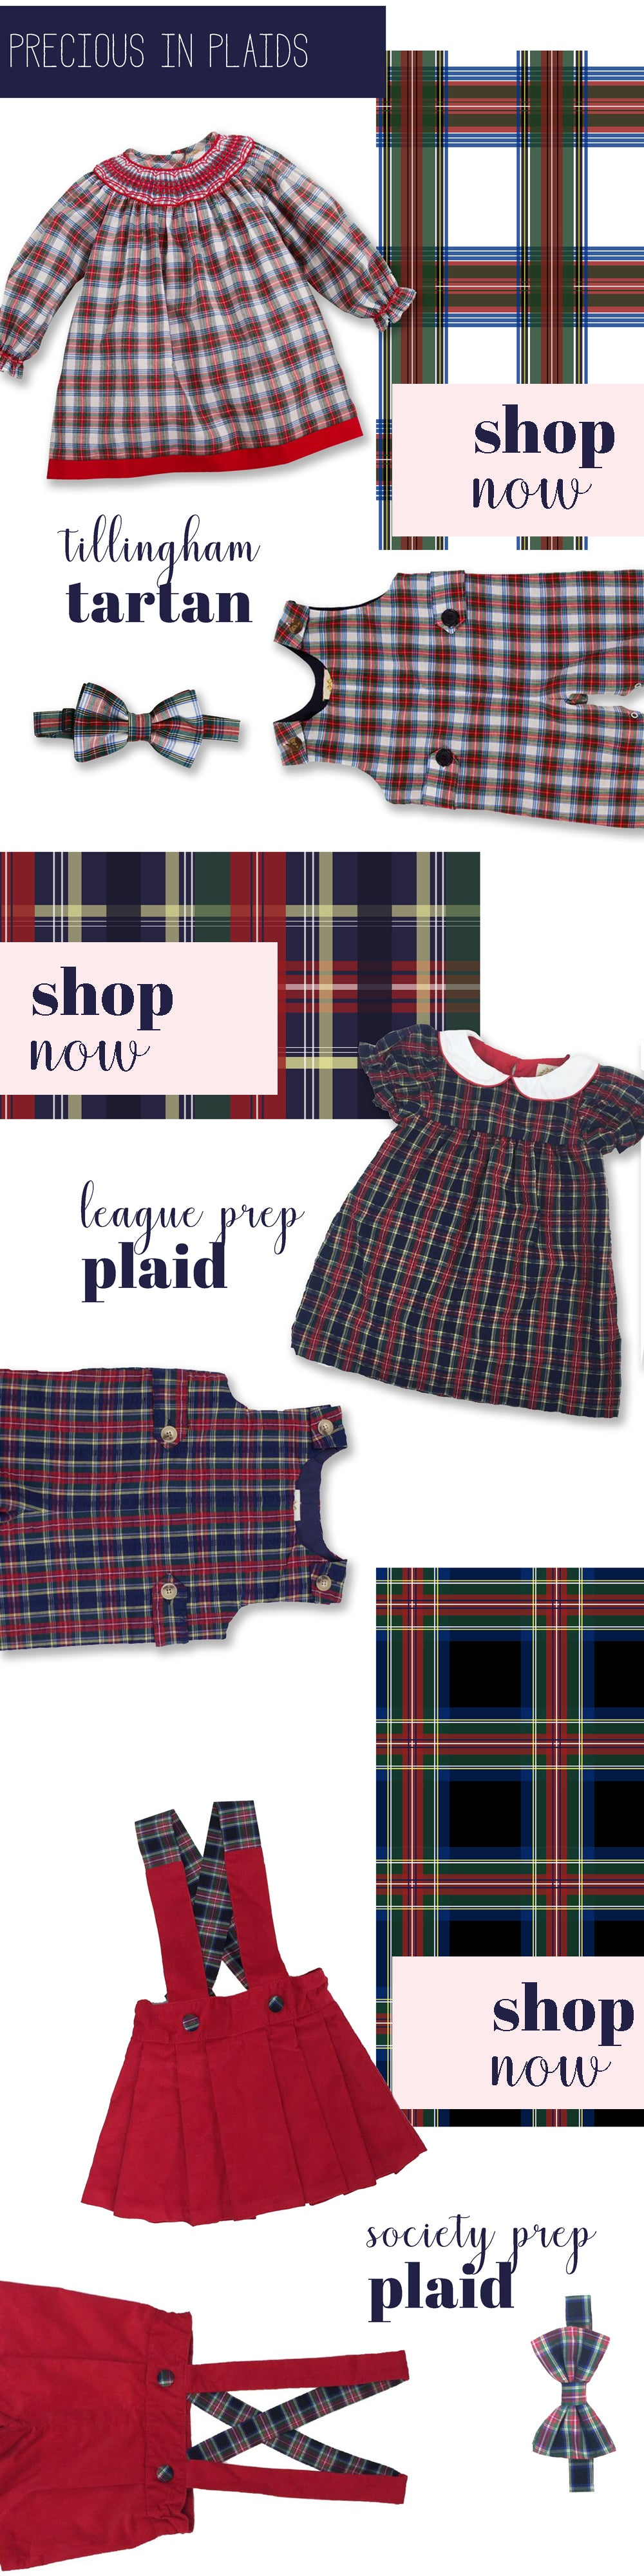 The Beaufort Bonnet Company Christmas 2017 Gift Guides | For Brother and Sister featuring plaid